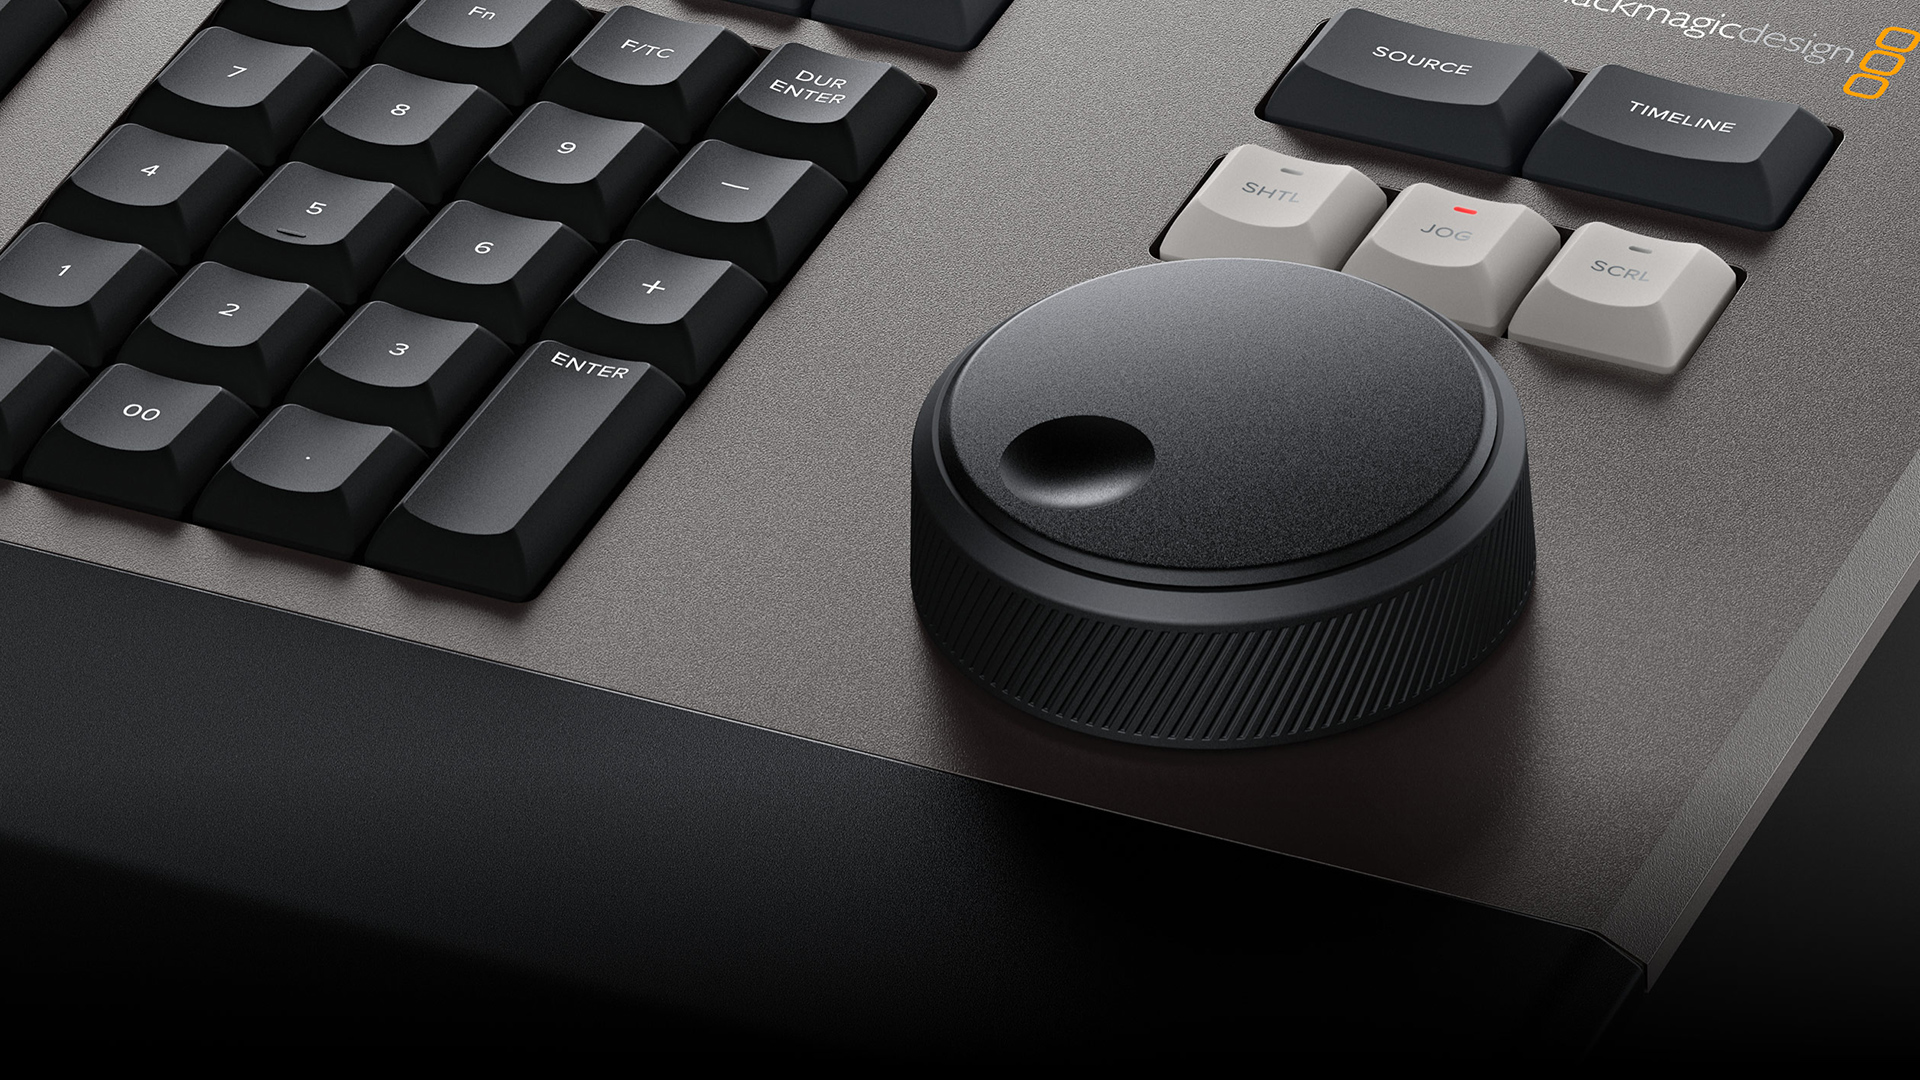 The Blackmagic Design Editor Keyboard pictured here threw up some discussion on RedShark about the price of products